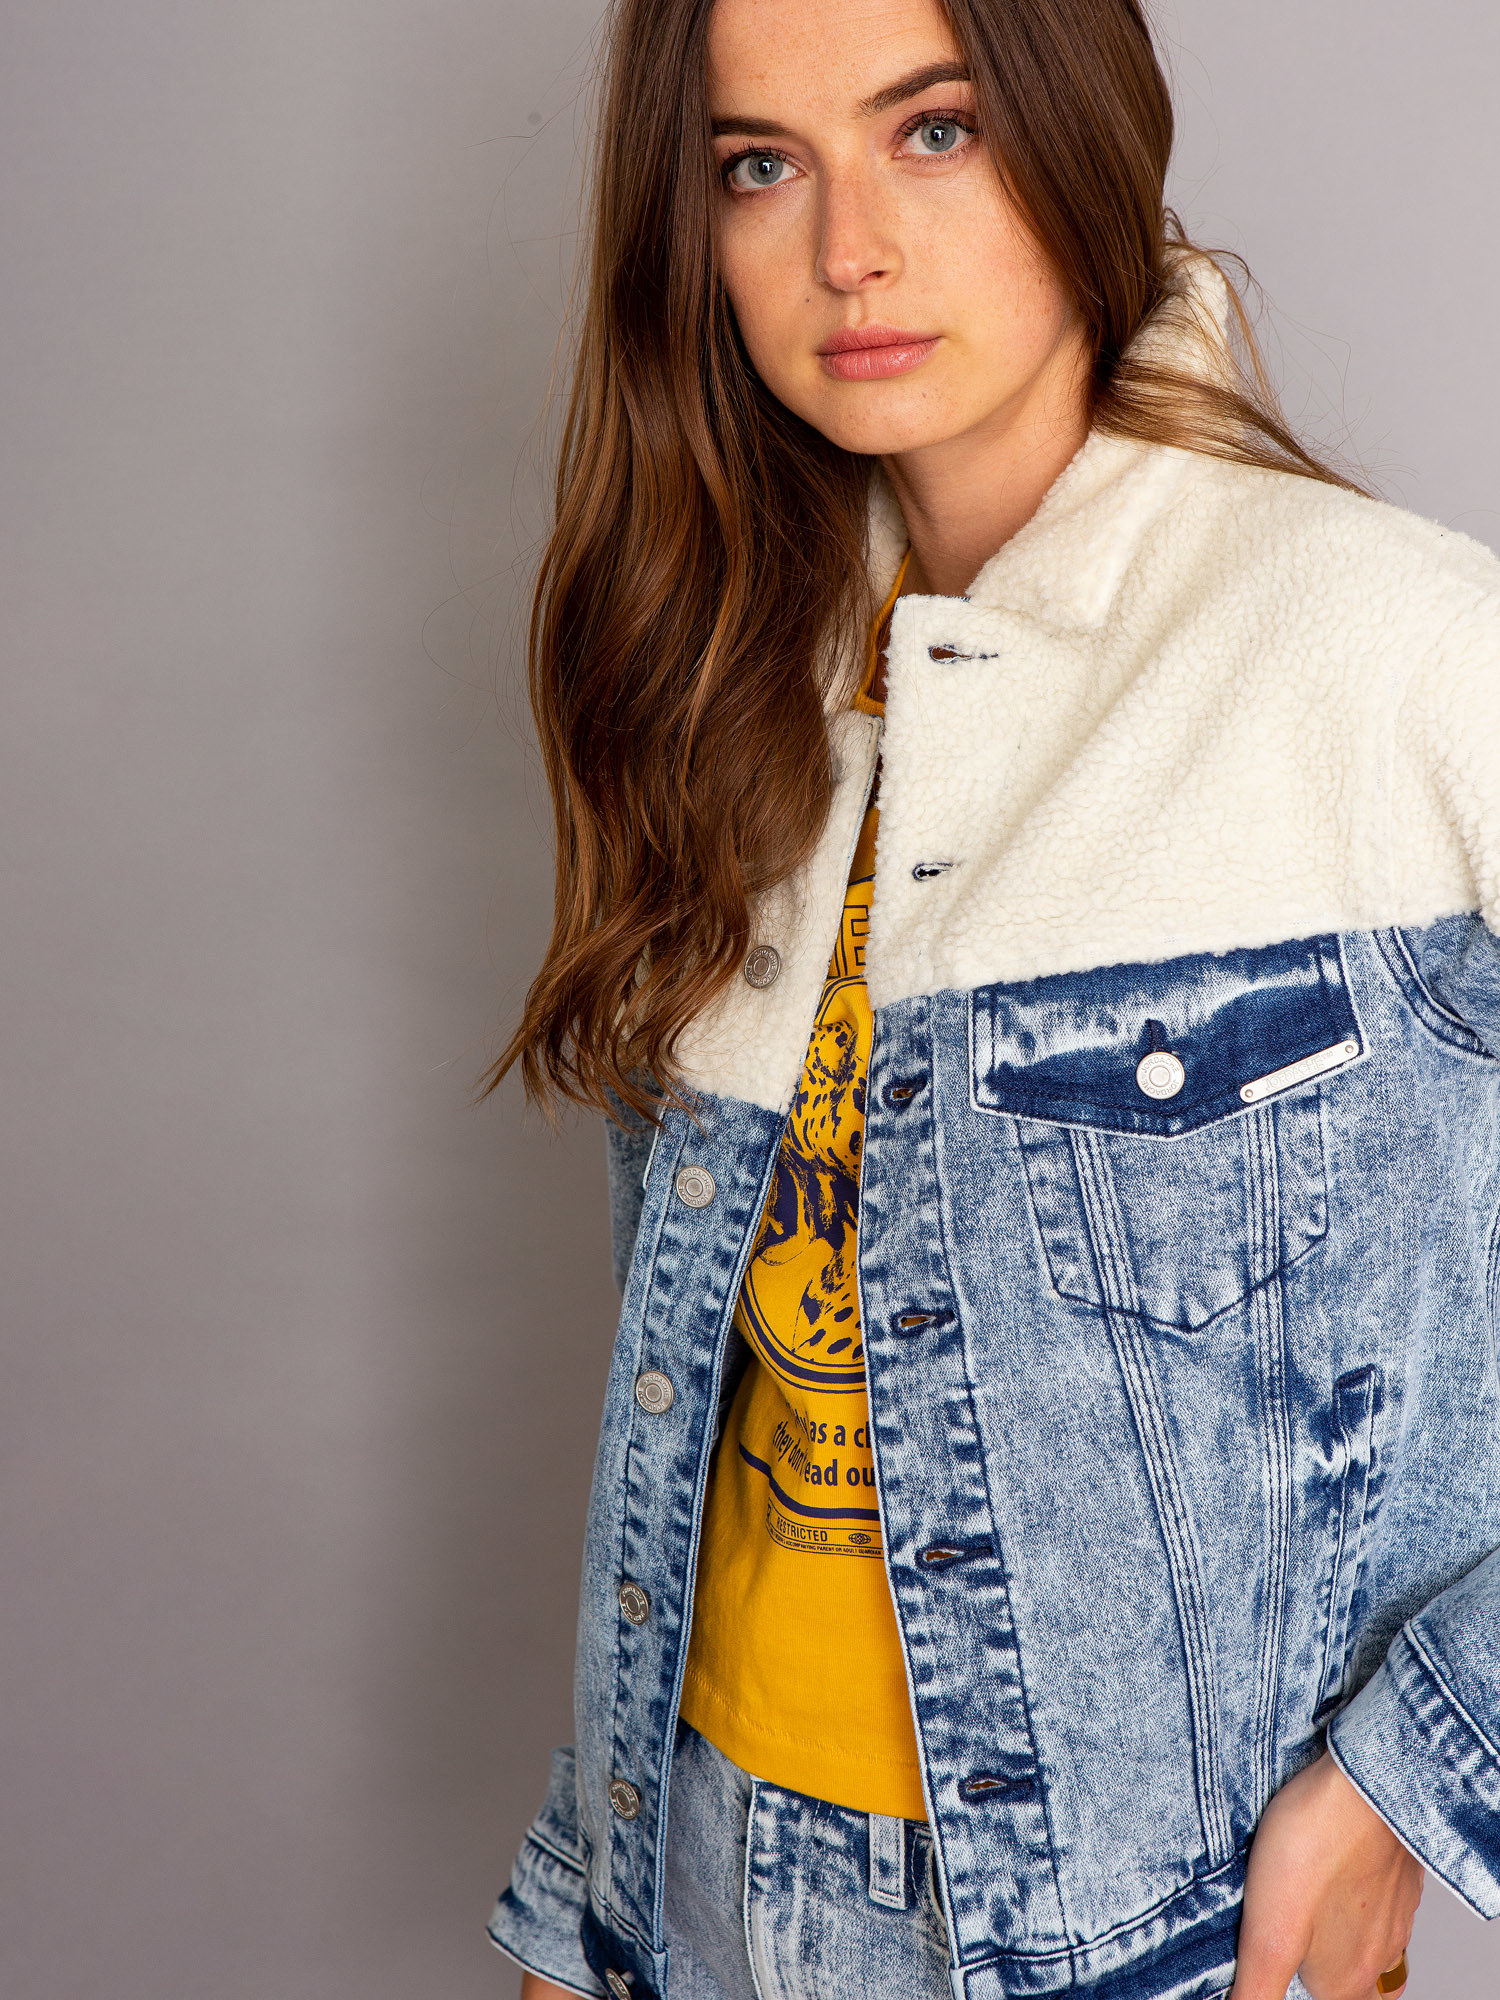 a model in a denim jacket with the top portion made of sherpa